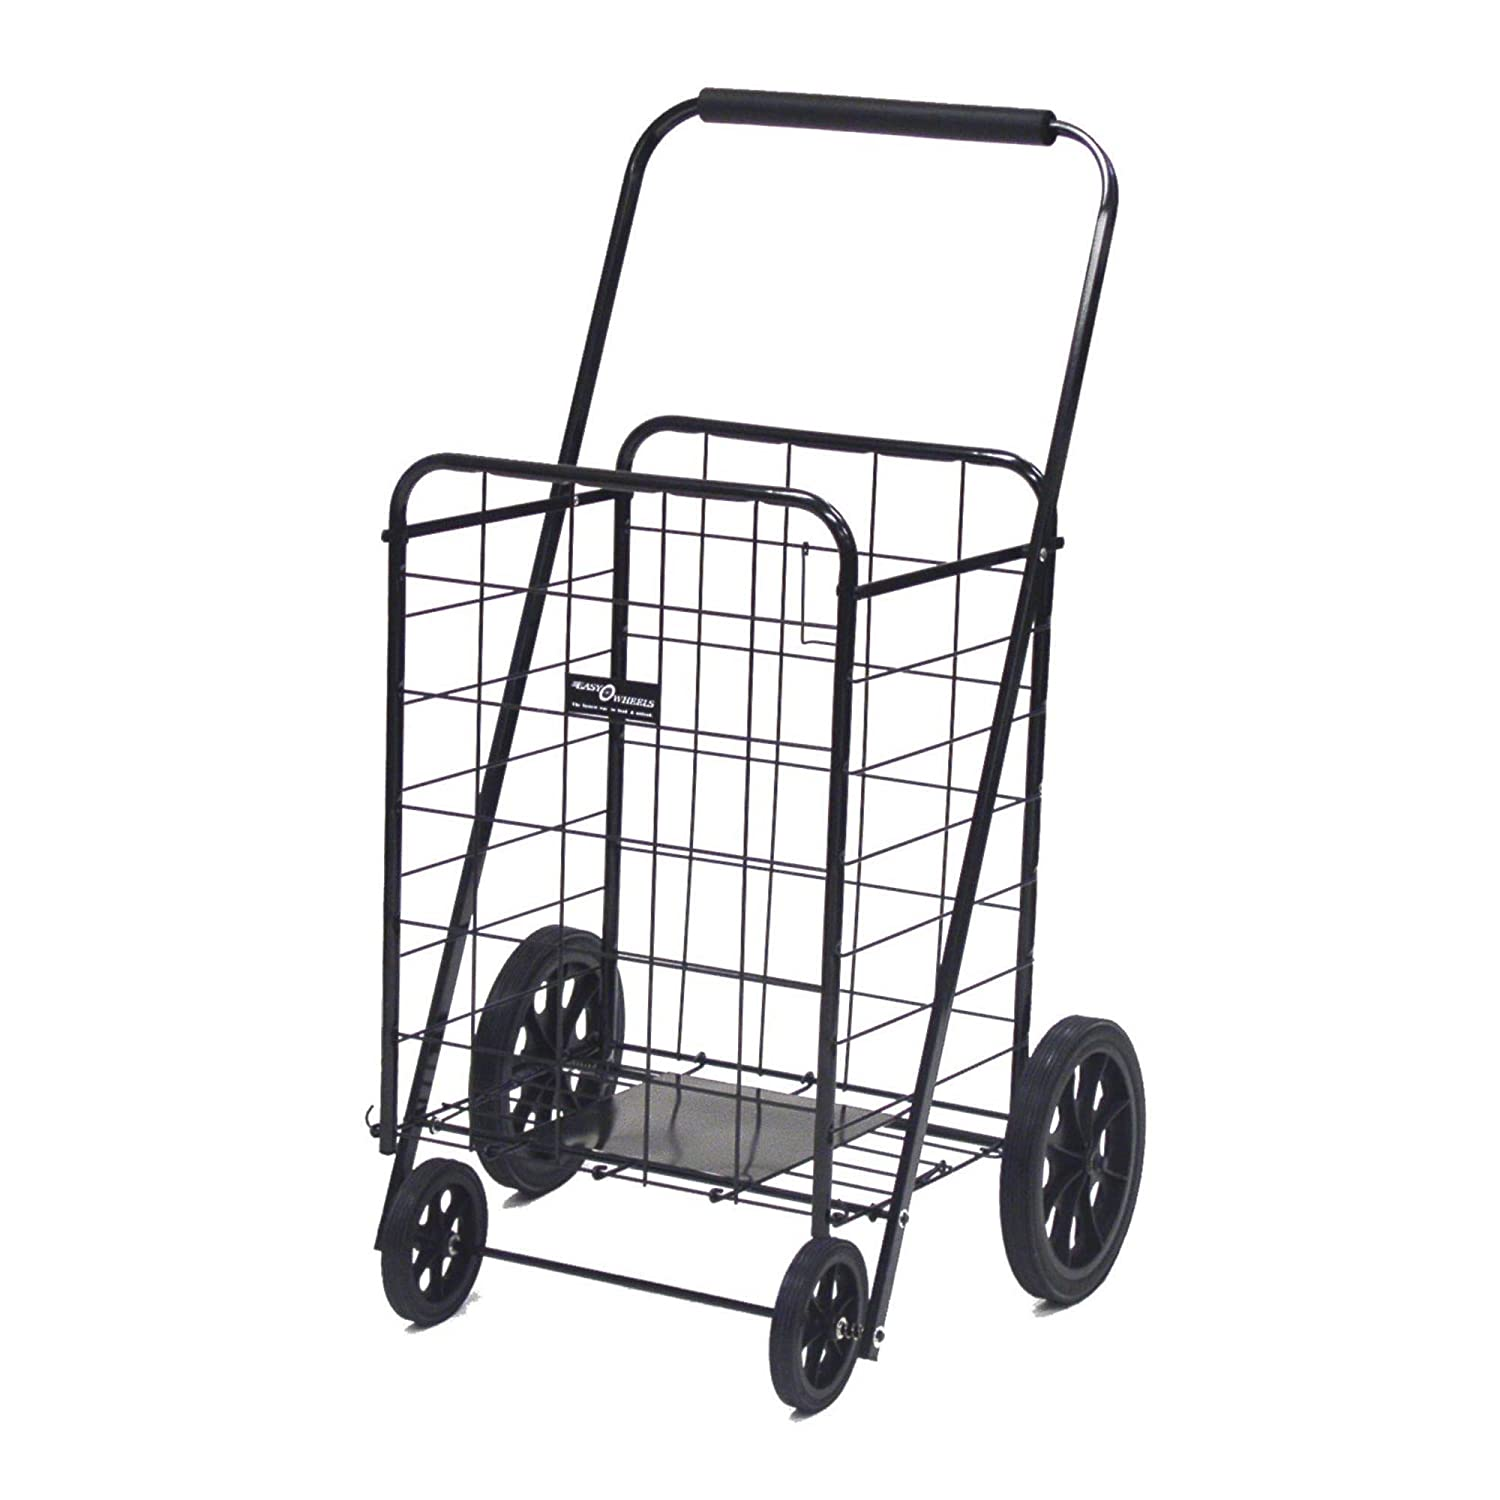 Easy Wheels Super Shopping Cart, Black Quest Products Company 002BK